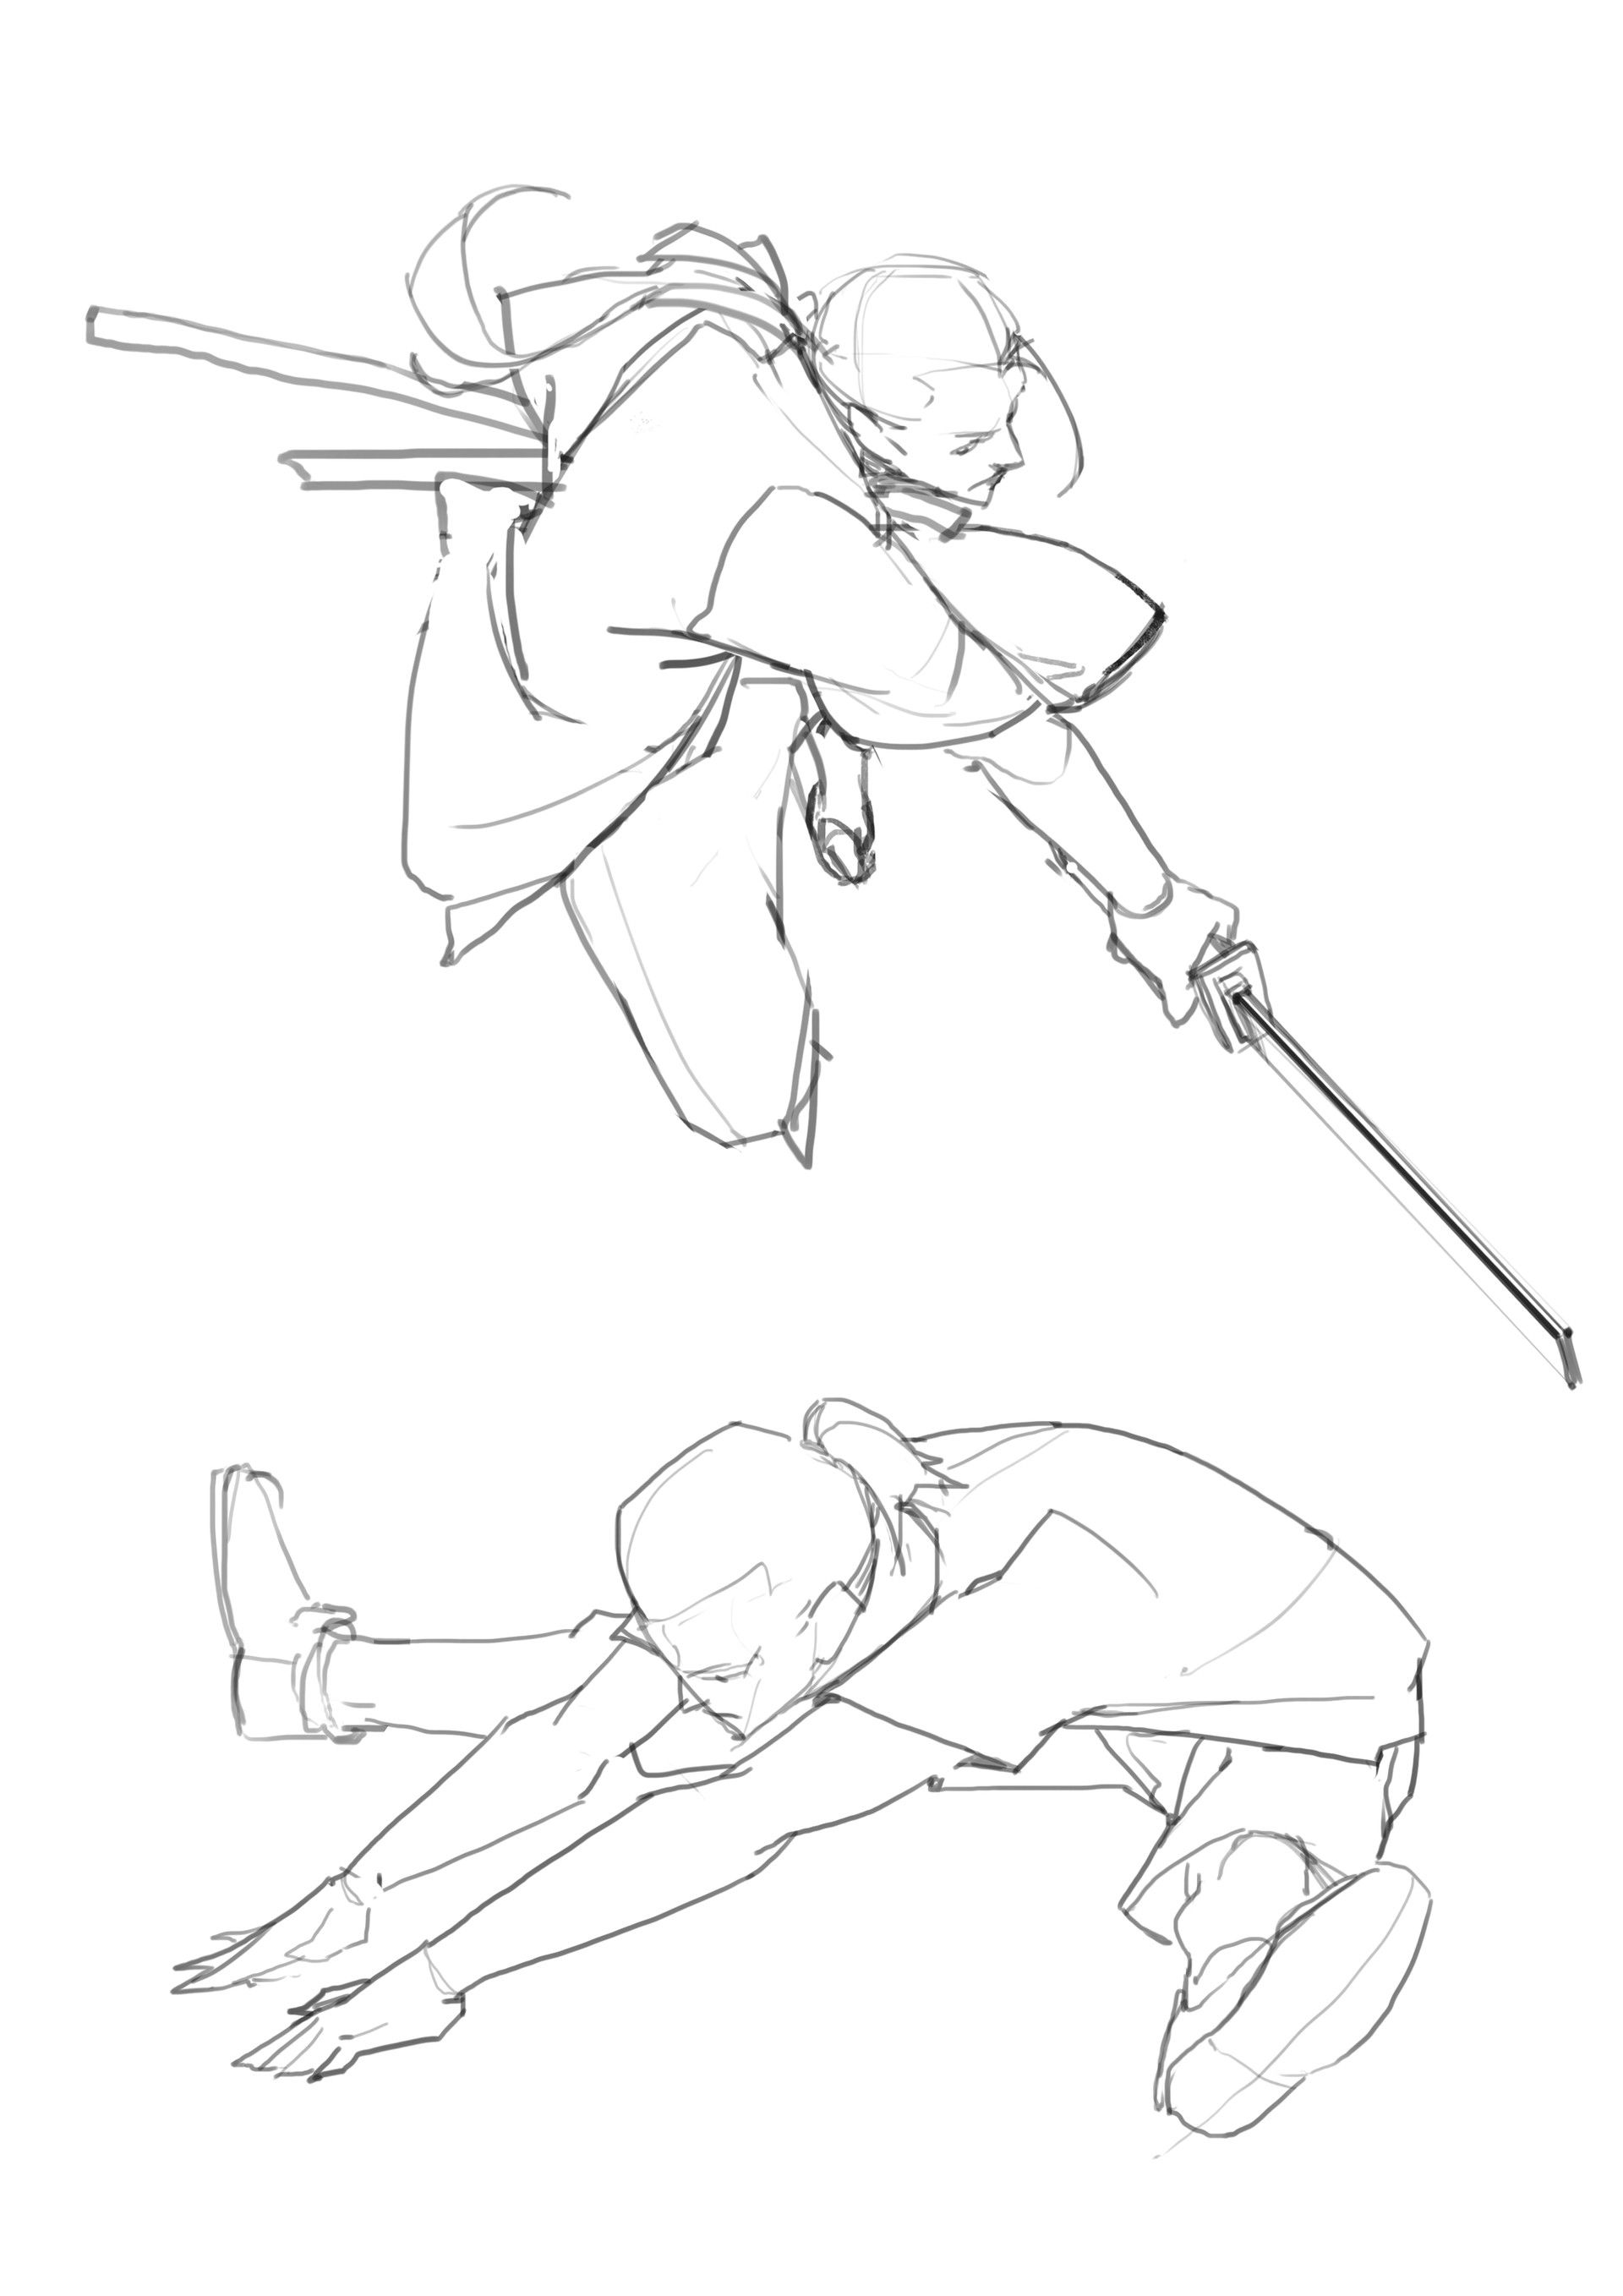 We Do A Clean Up Of Our Rough Draft Of Alacrity Done For The Famous Alacda Here Is The Video If You Wanna Dynamic Poses Dynamic Poses Drawing Perspective Art